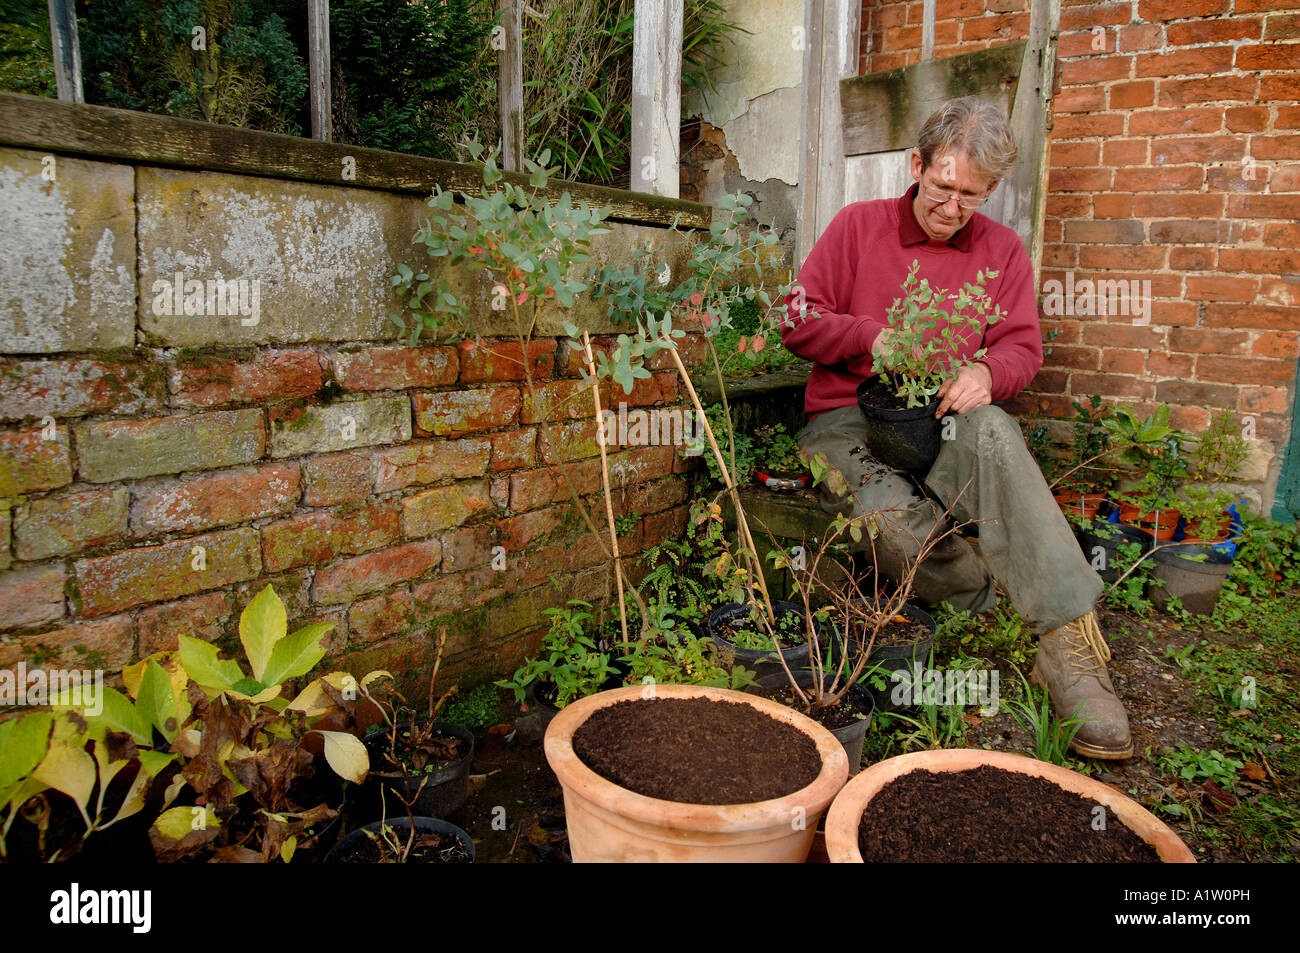 a gardener working in a walled garden in a country house - Stock Image